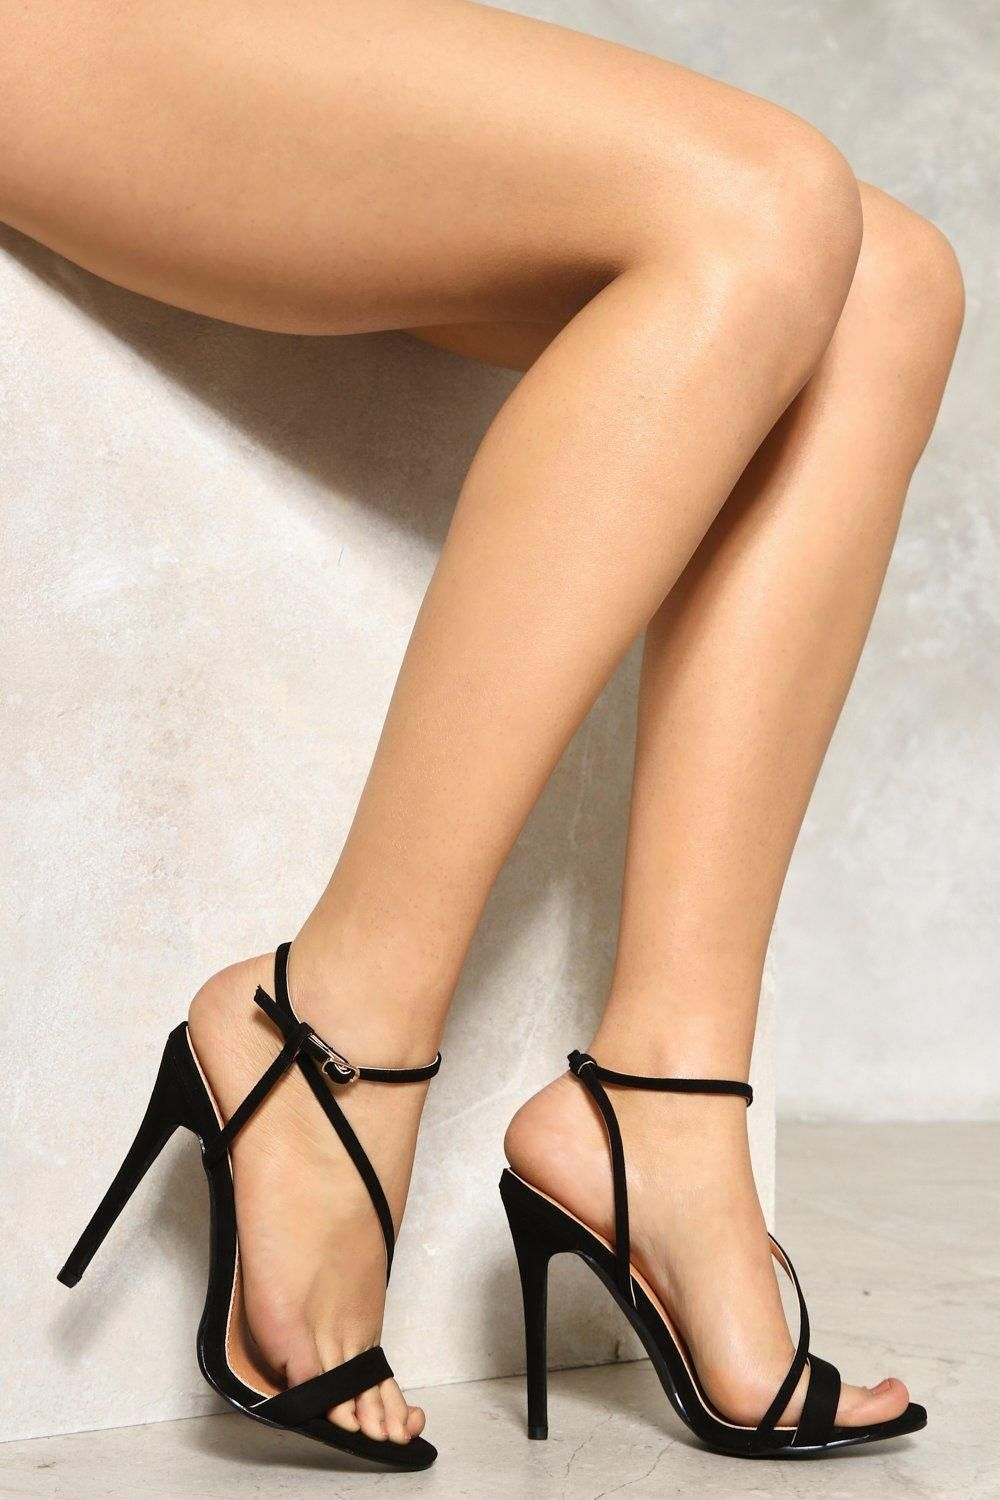 sex, meet city. the samantha heel features a strappy silhouette